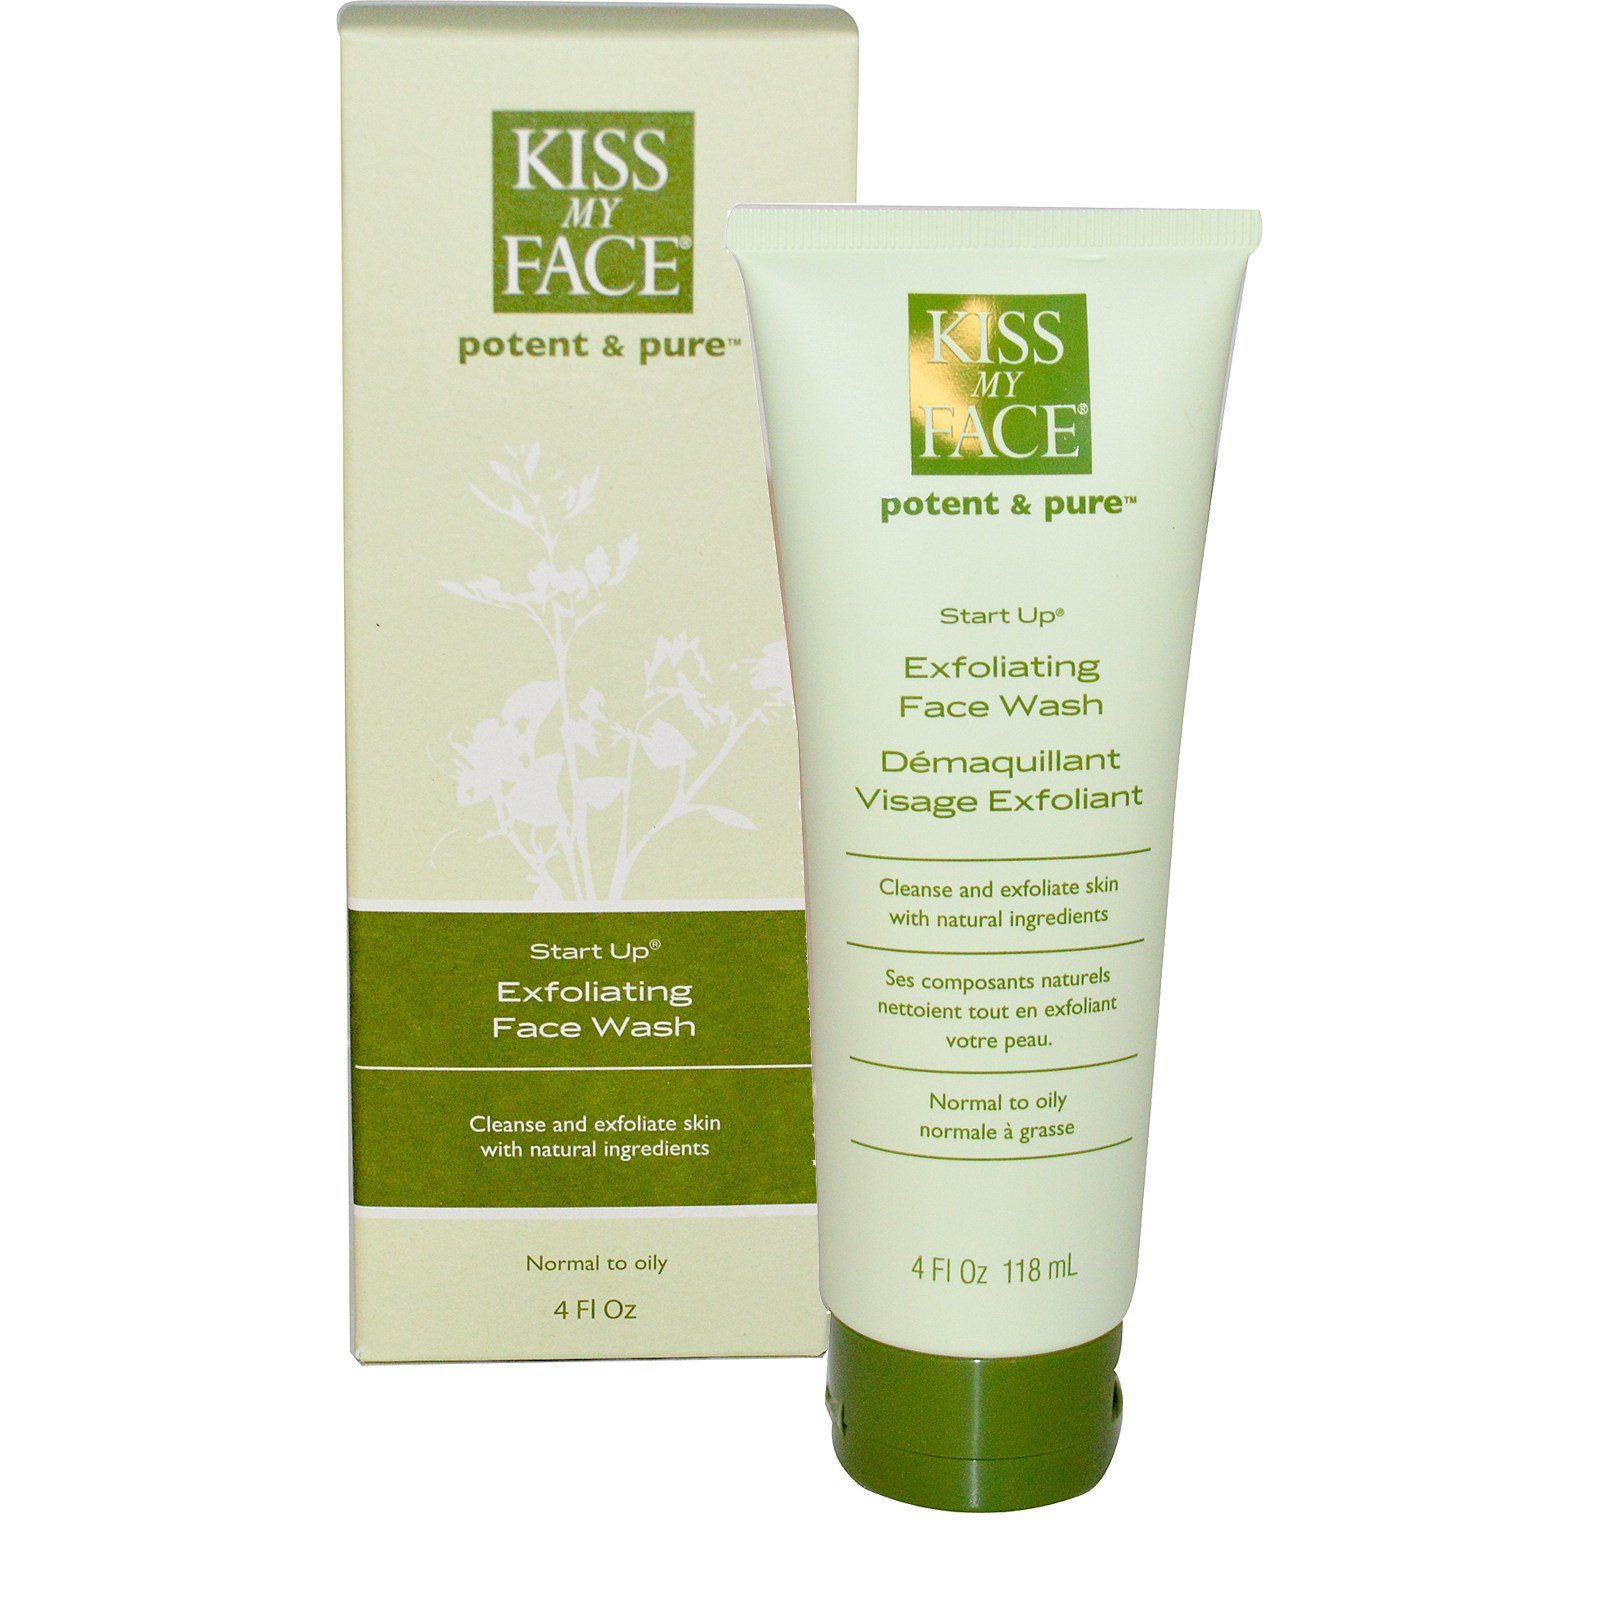 Kiss My Face Potent And Pure Start Up Exfoliating Face Wash - 4 Oz Kigelia & Licorice After-Sun Facial Wash